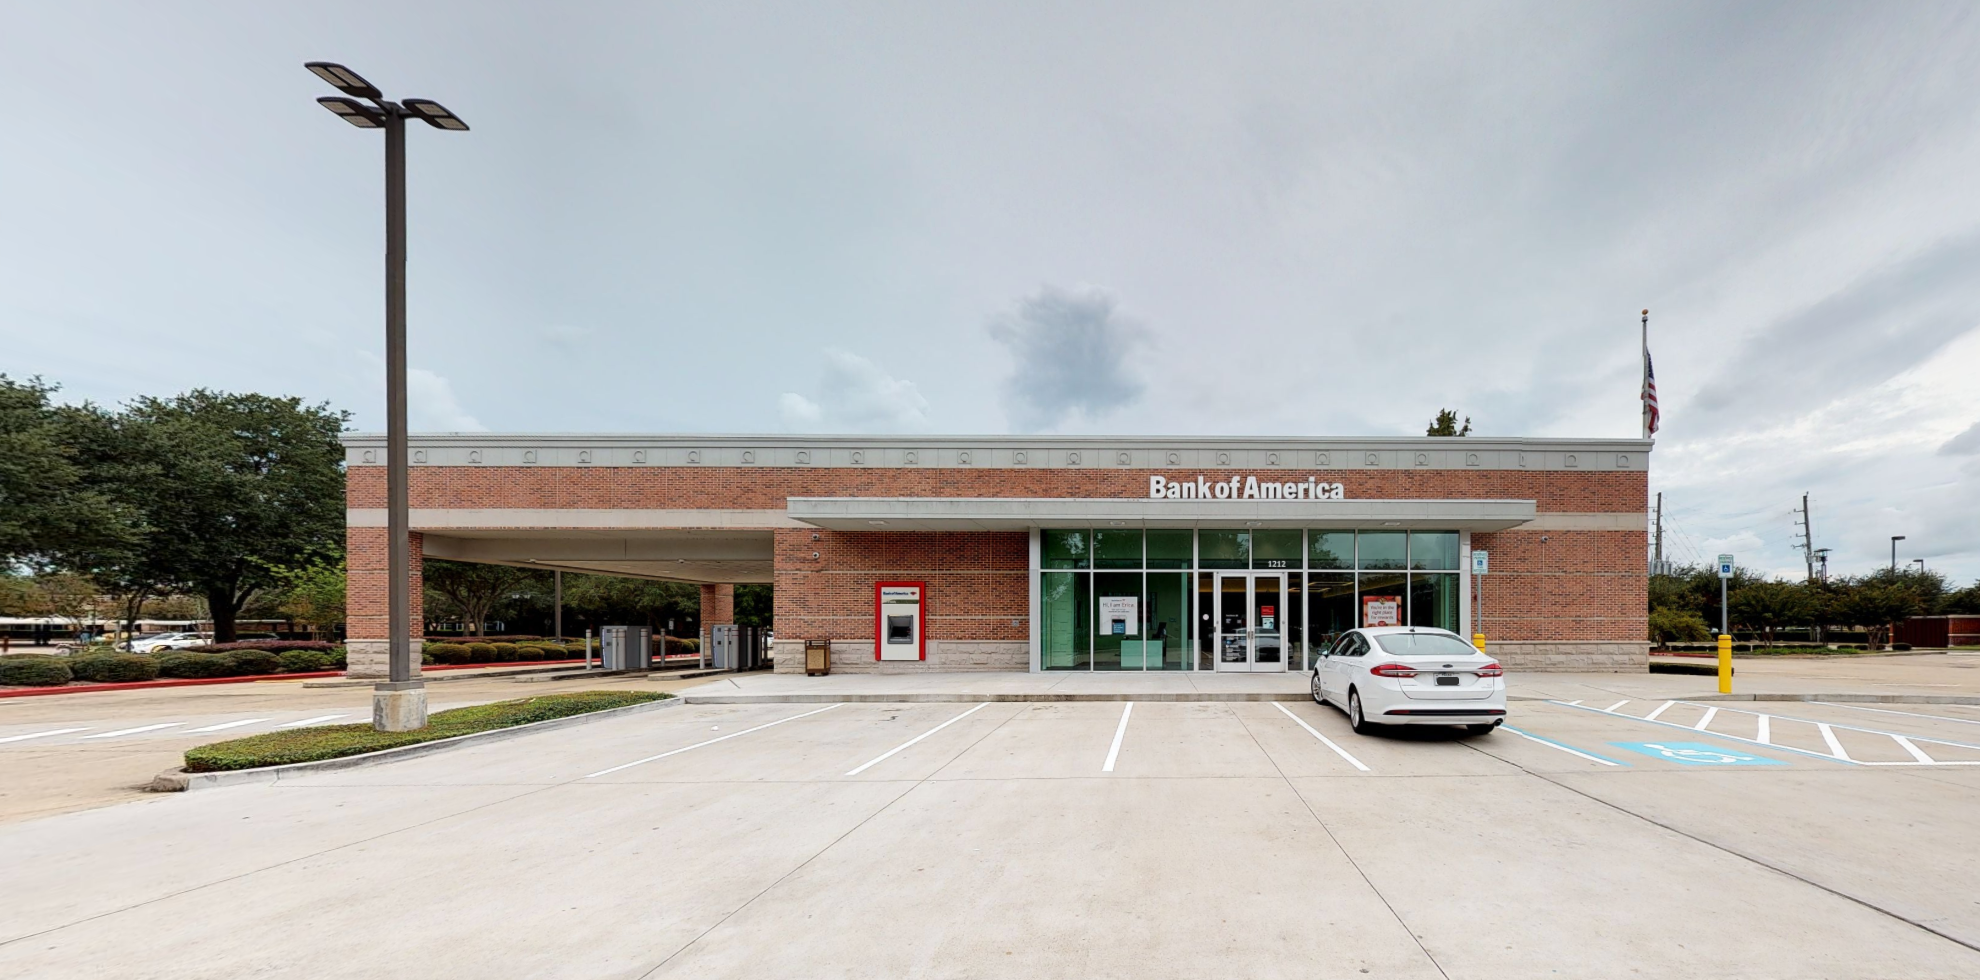 Bank of America financial center with drive-thru ATM   1212 Highway 6, Sugar Land, TX 77478